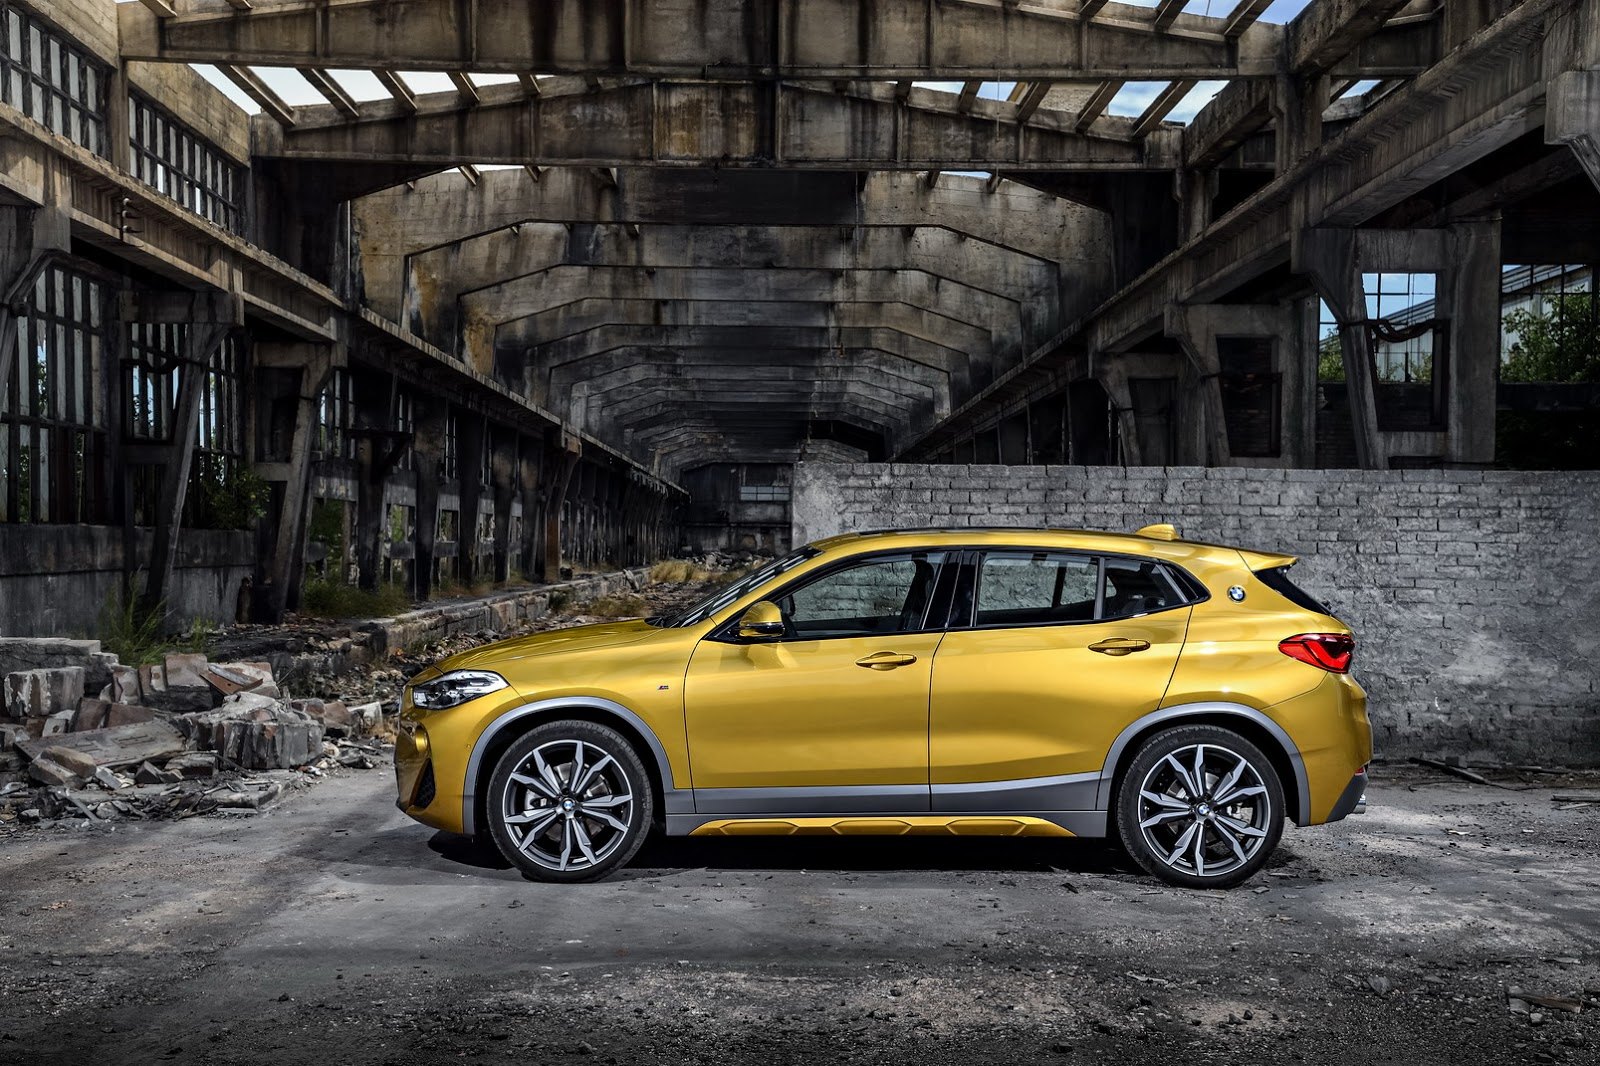 2018 Bmw X2 F39 Goes Official Boasts Head Turning Exterior Design Autoevolution